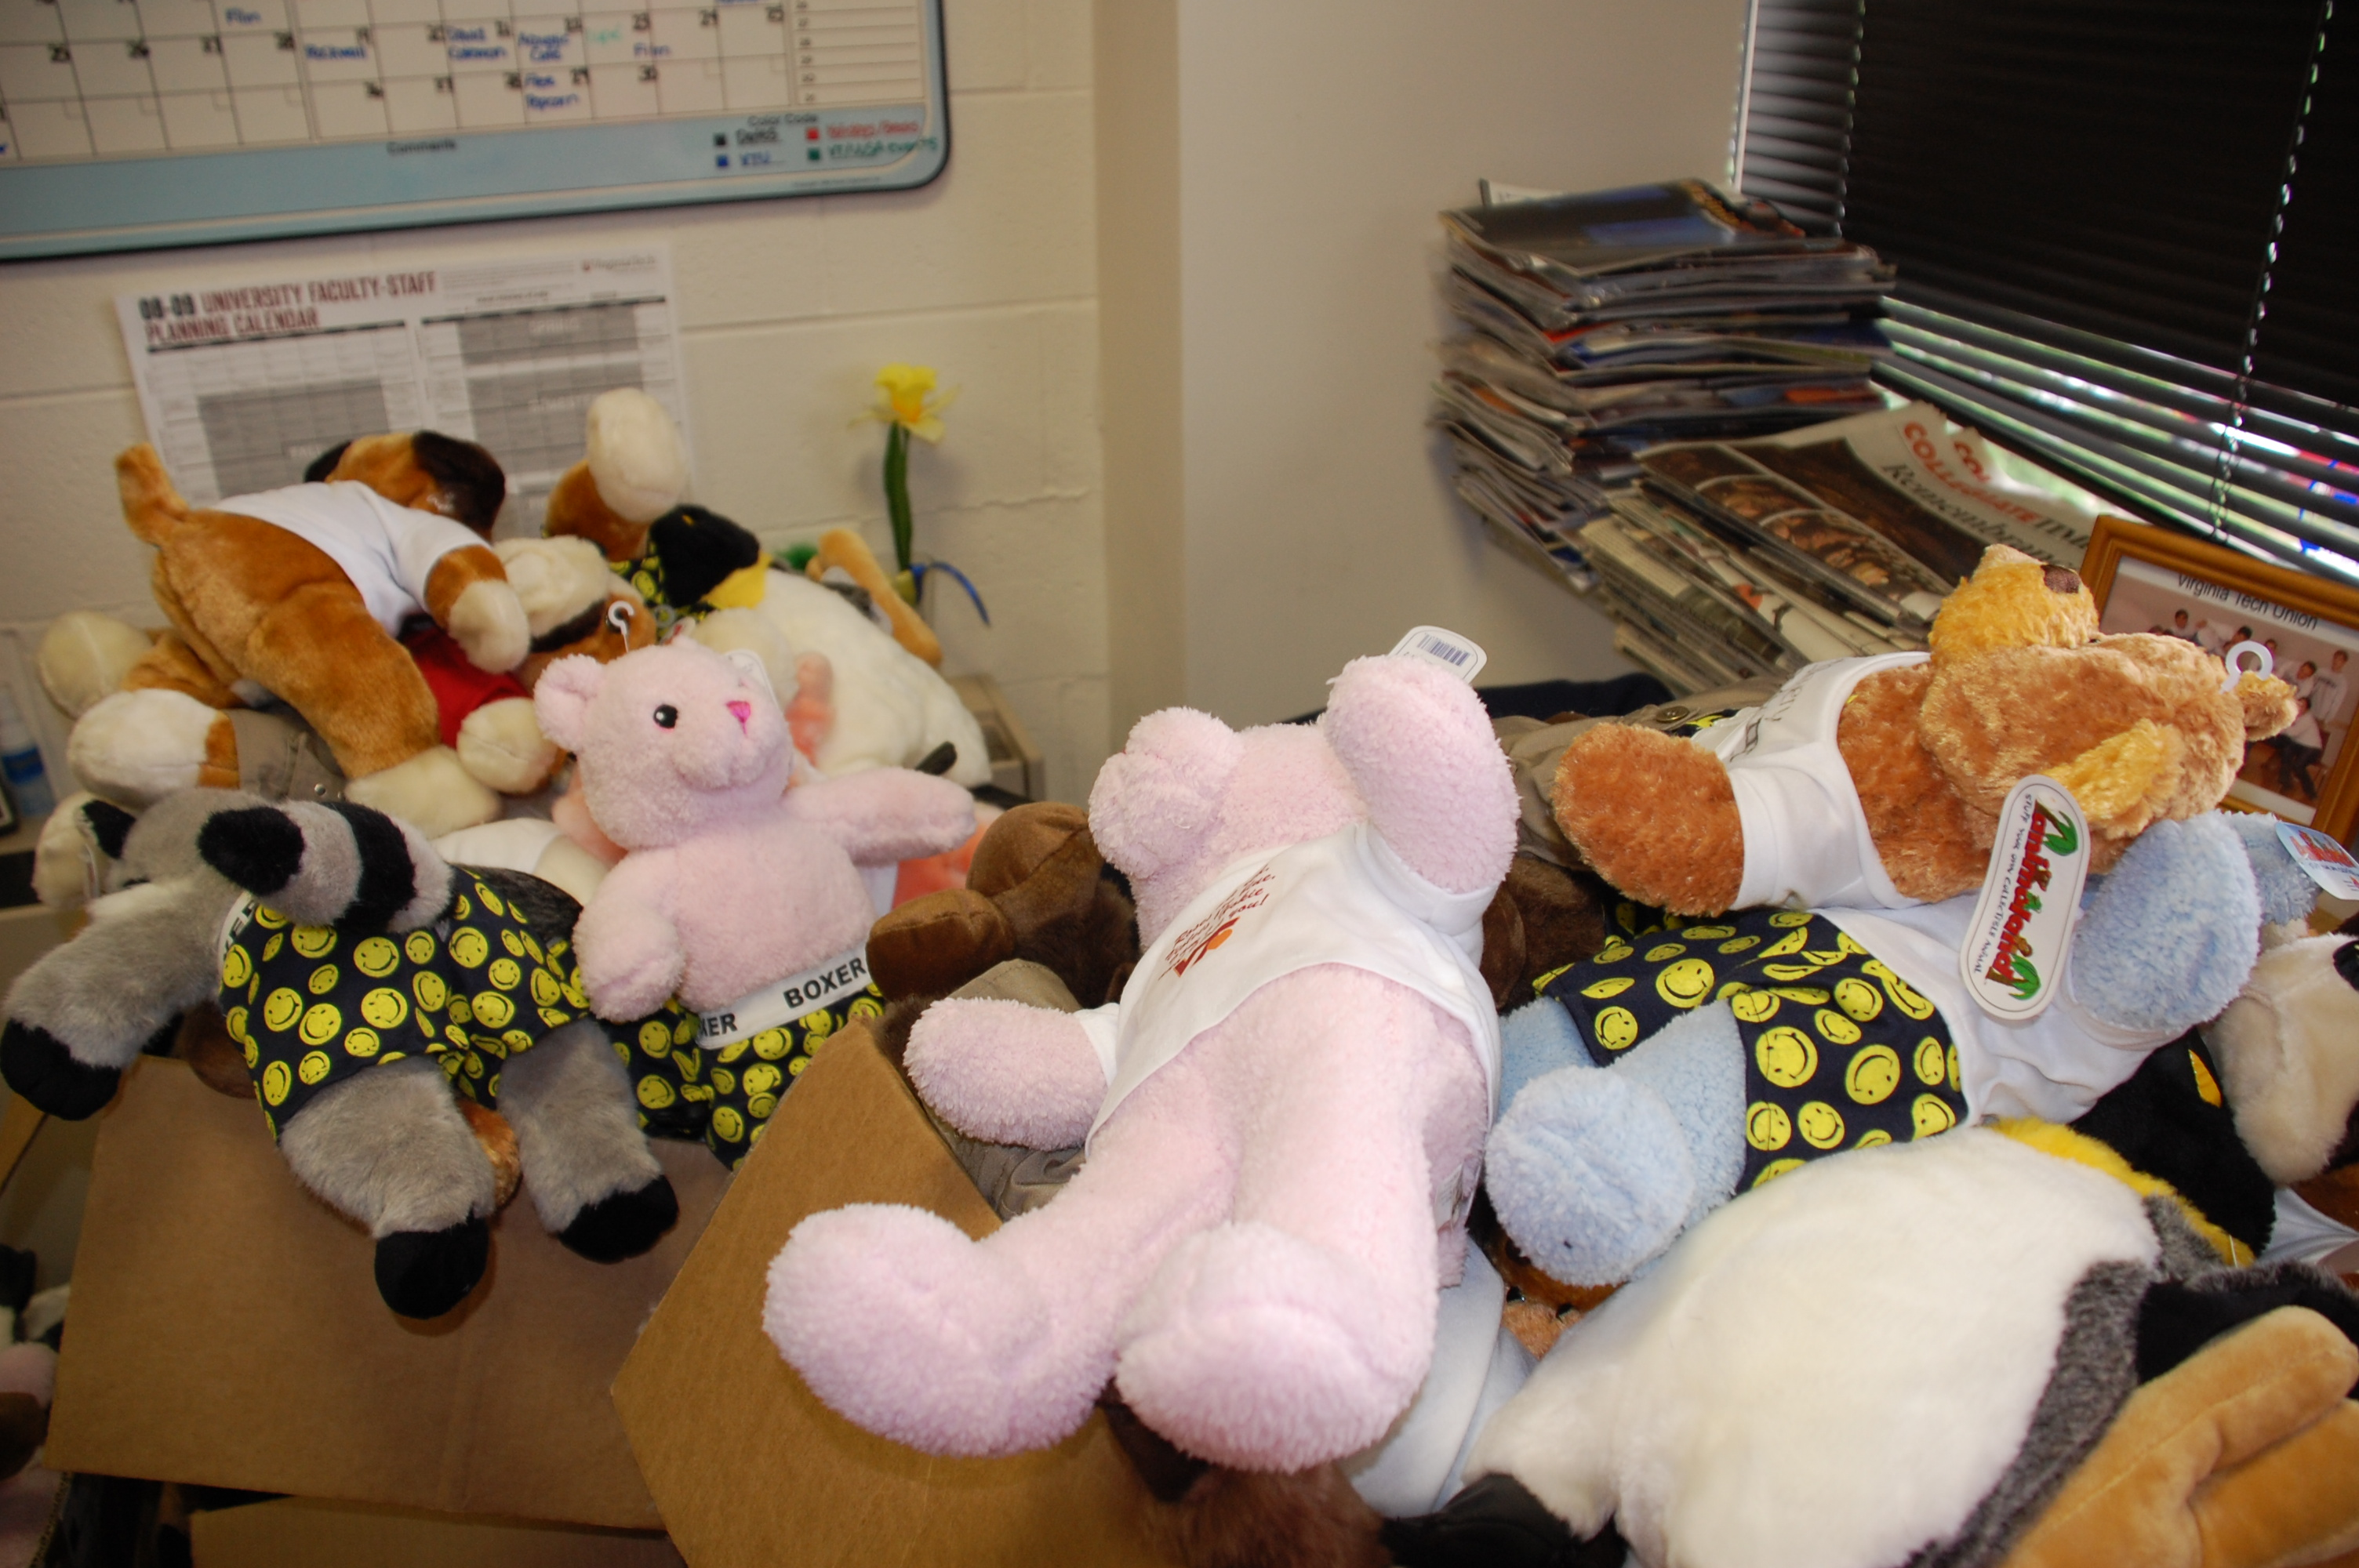 More than 125 stuffed animals are on their way to new homes, thanks to the Virginia Tech Union and NRV Cares.